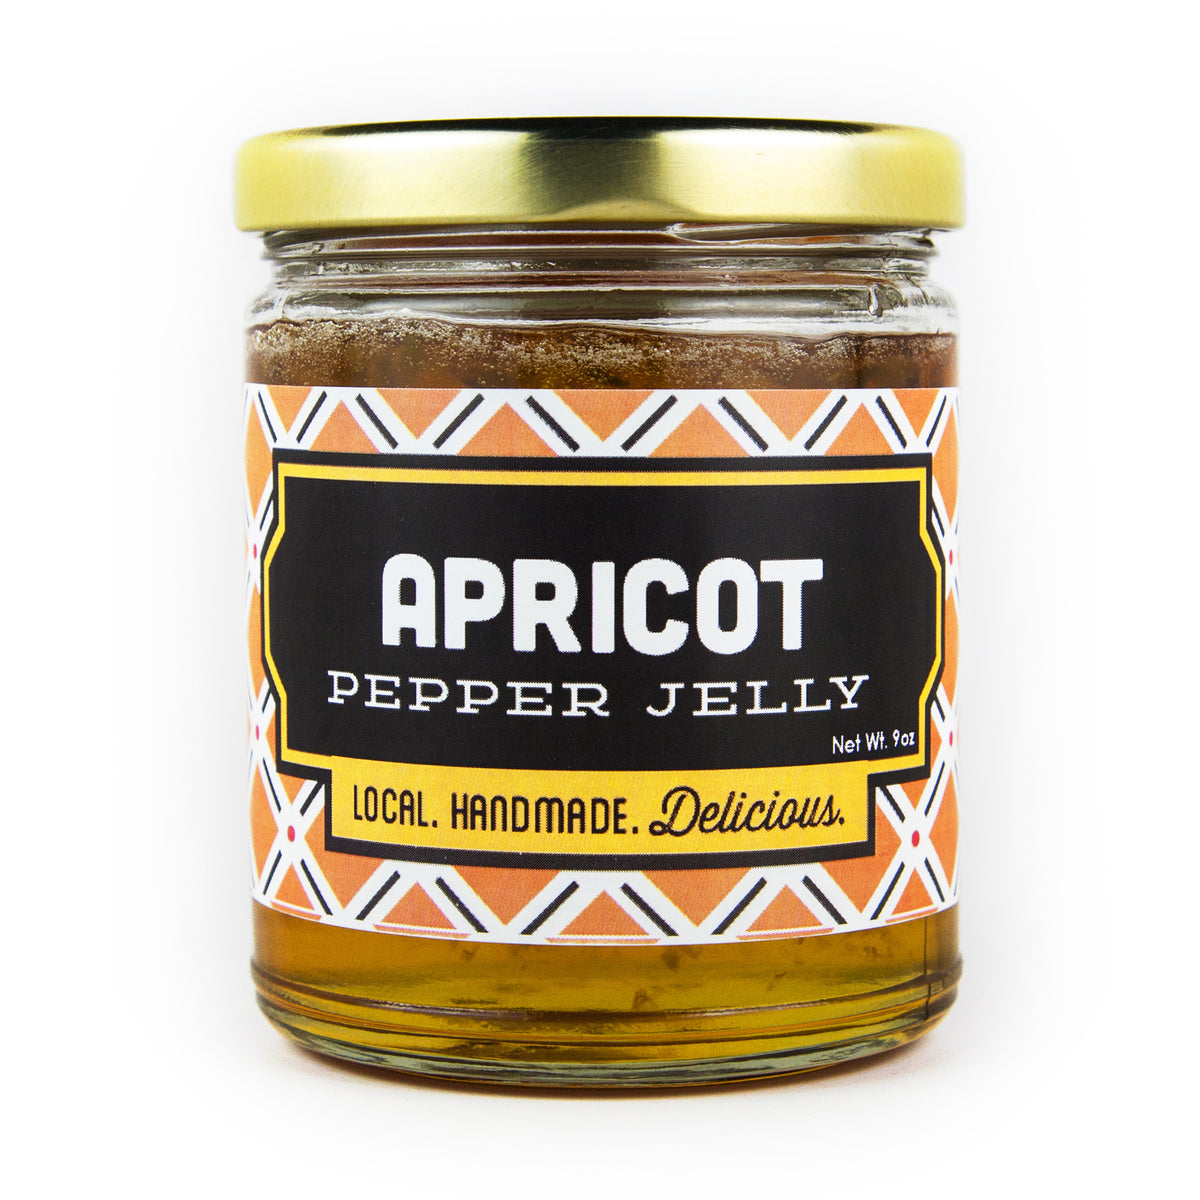 Louisiana Sweet Apricot Pepper Jelly - Affordable_Louisiana Seasonings - Red Stick Spice Company